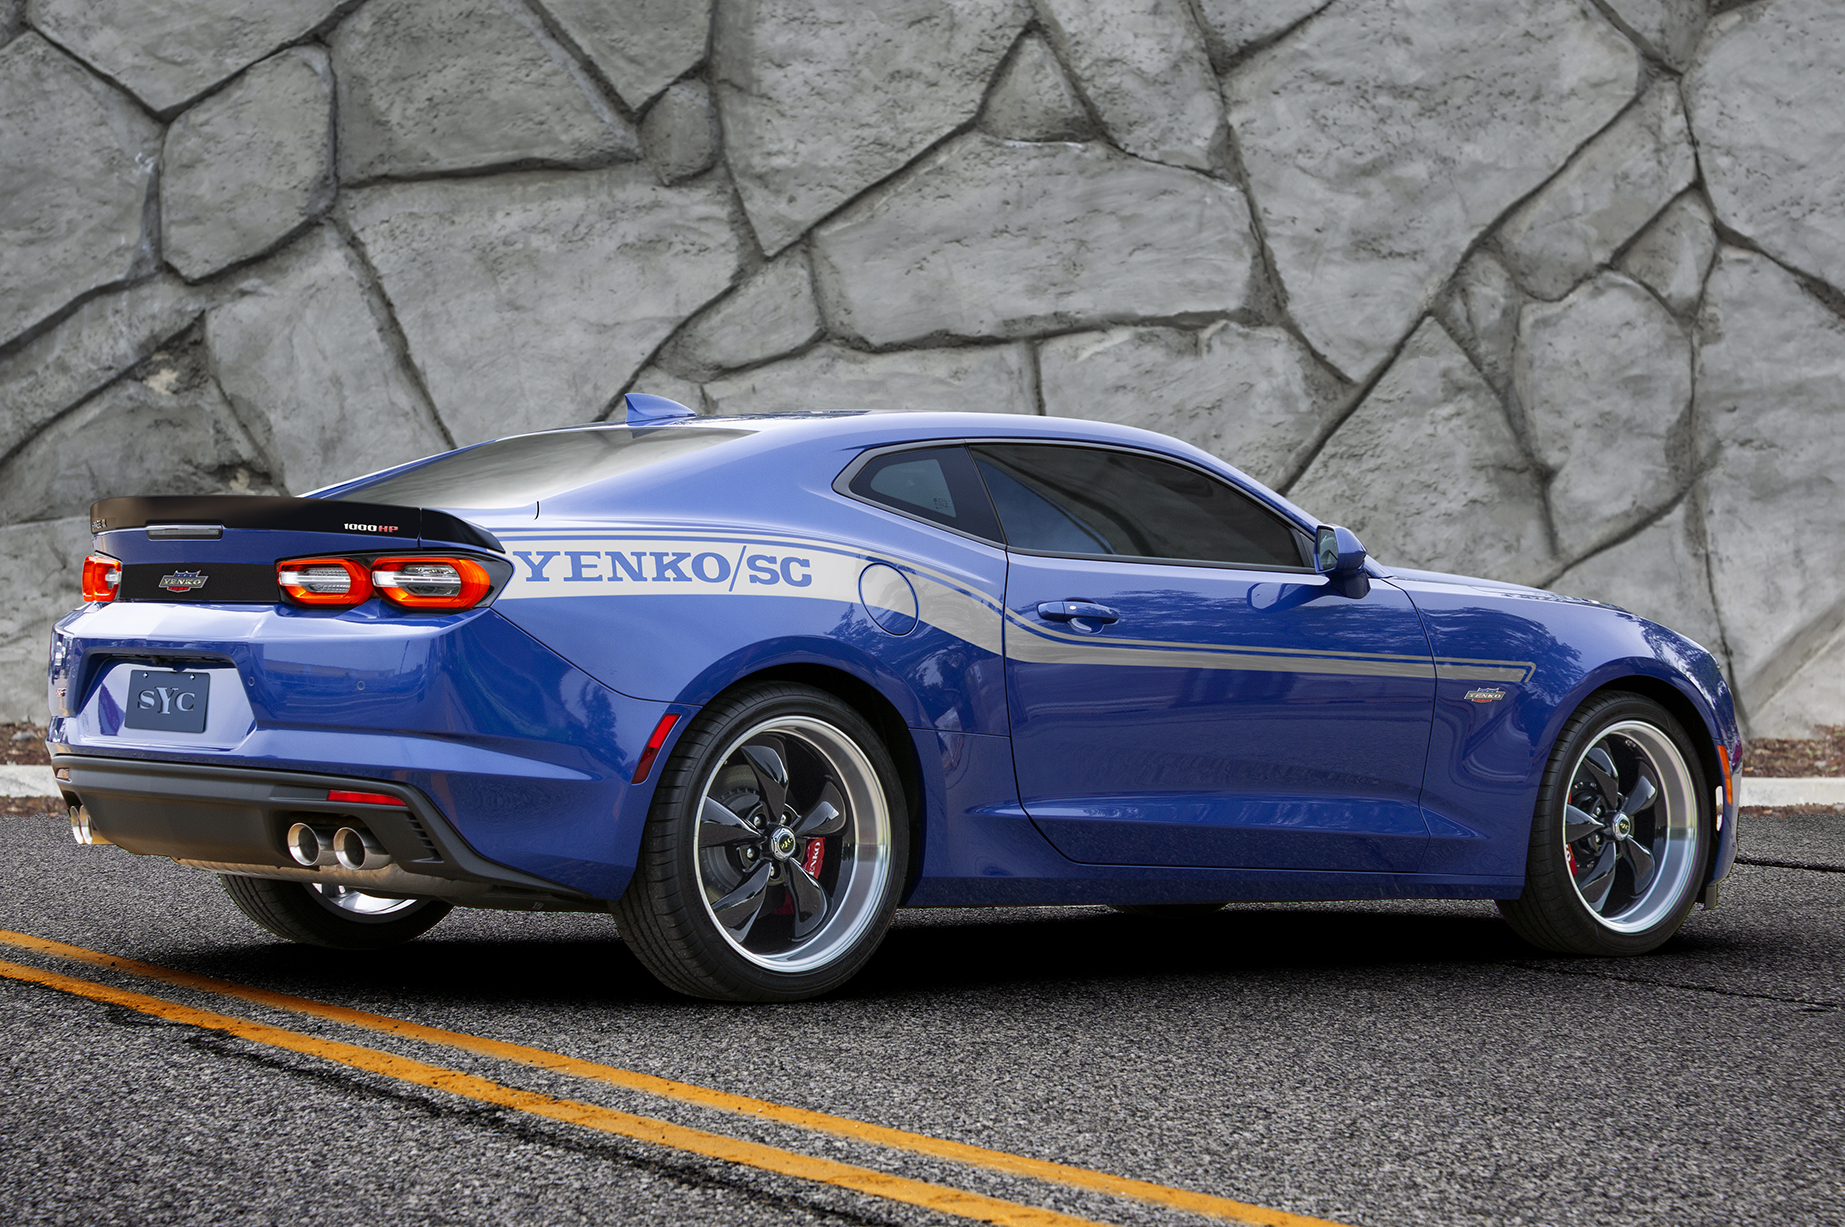 The 1 000 Horsepower 2019 Yenko Sc Camaro Is Now On Sale